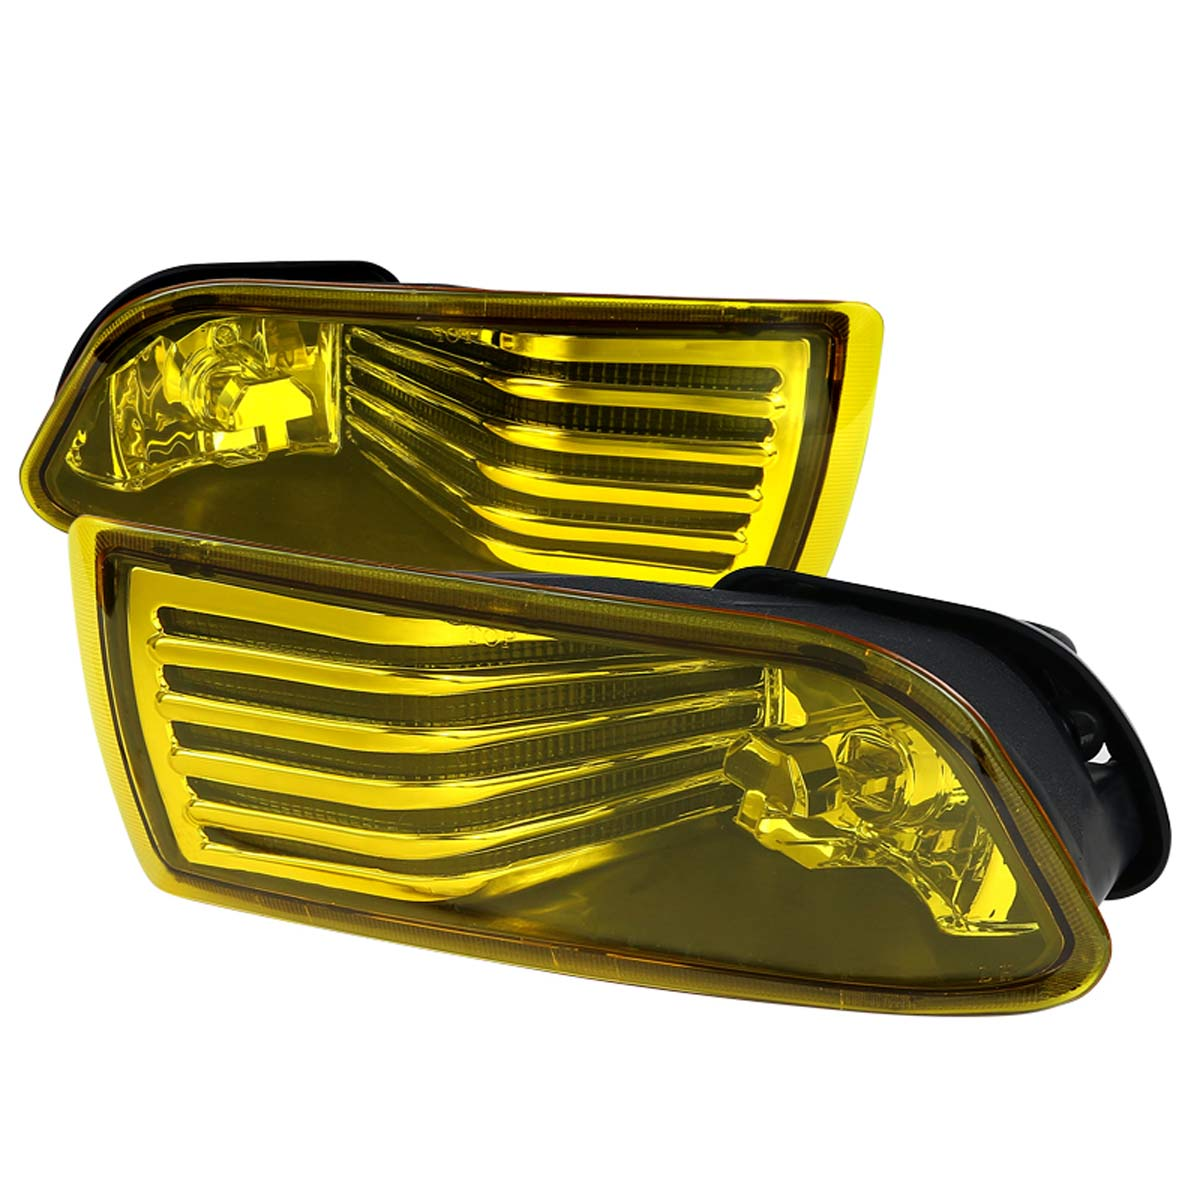 Positive additionally Window besides Clsc Tc L together with Toyota Scion Xb Fuse Box Map together with Dodge Charger Performance Parts At. on scion tc fog light wiring diagram